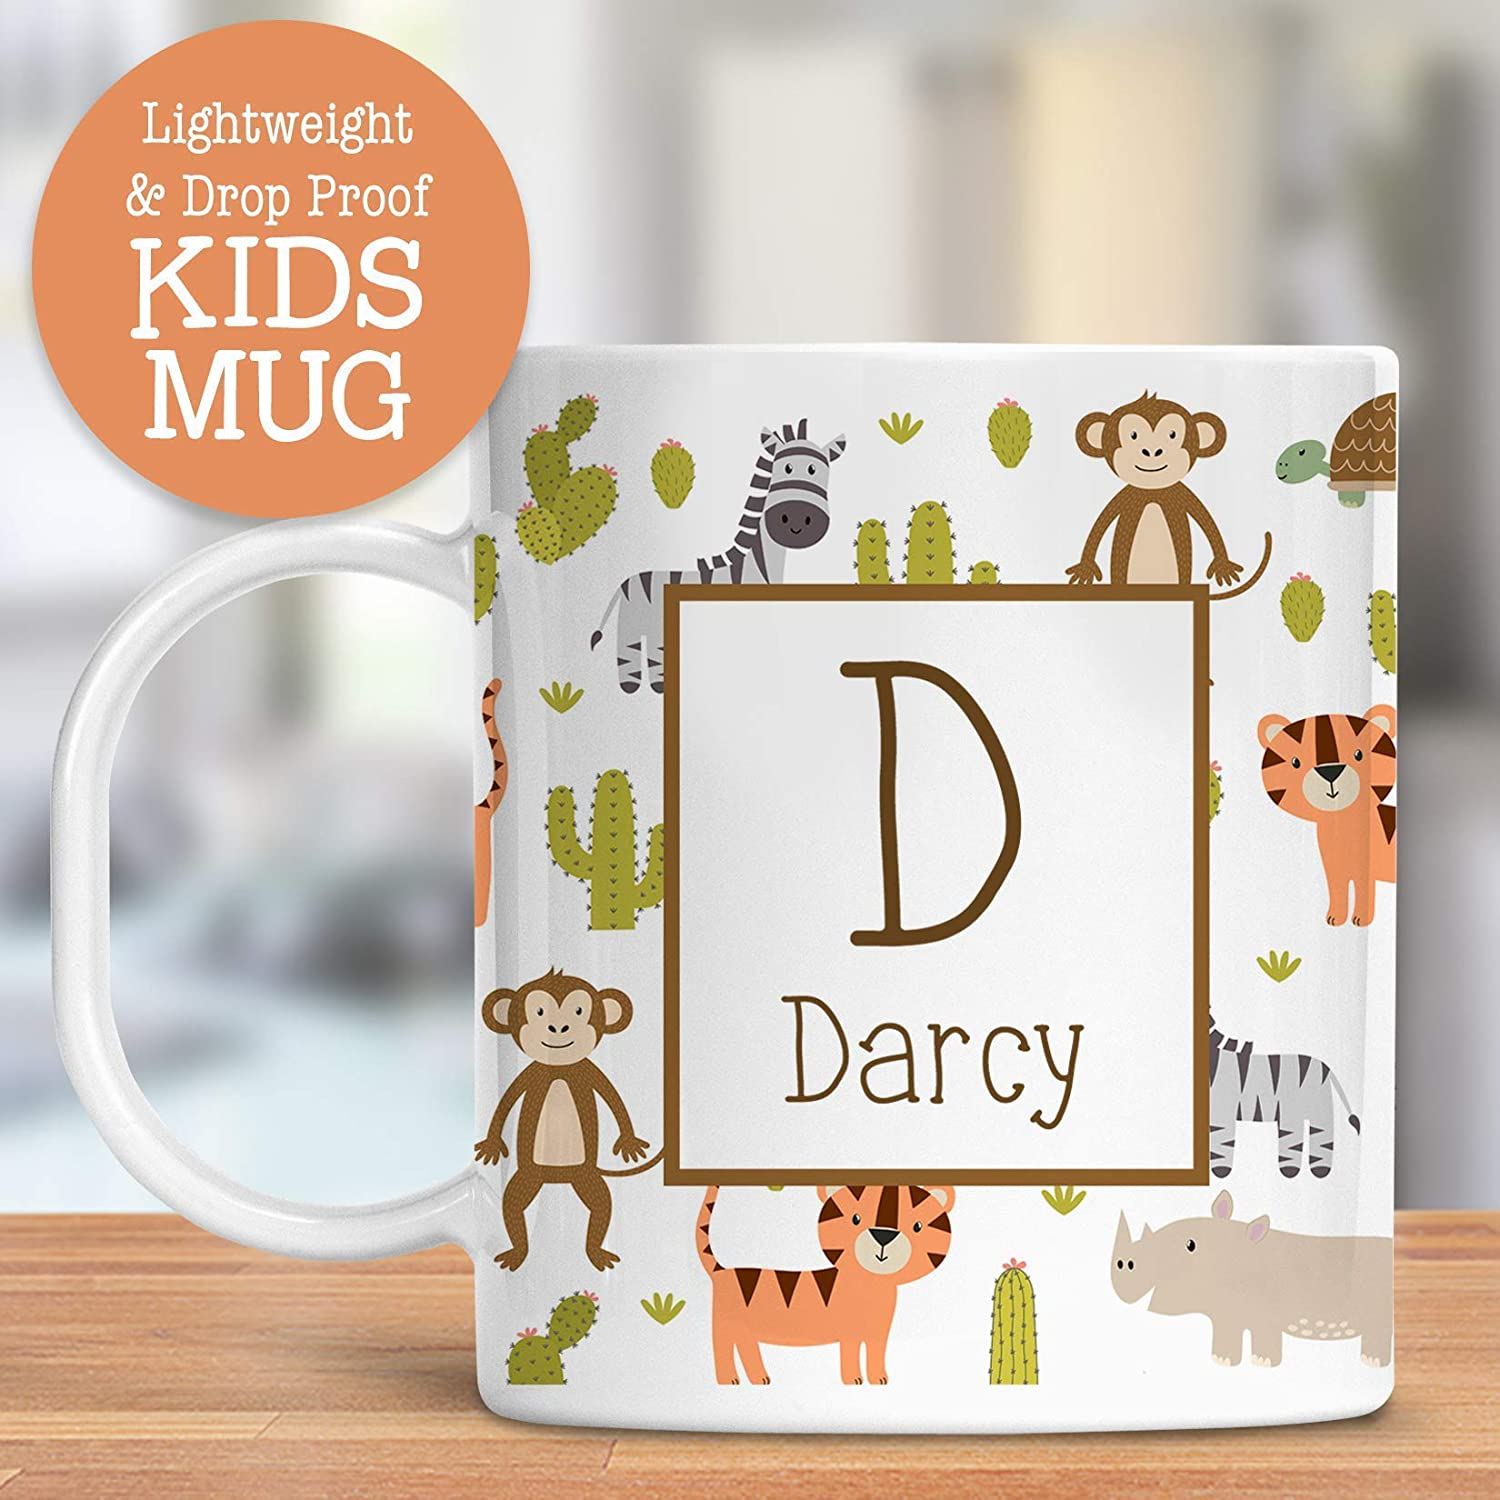 Child Toddler Cup BPA Free Dishwasher Safe Kids Personalized Mug Jungle Animals Customize with Name and Initial Lightweight and Drop Proof